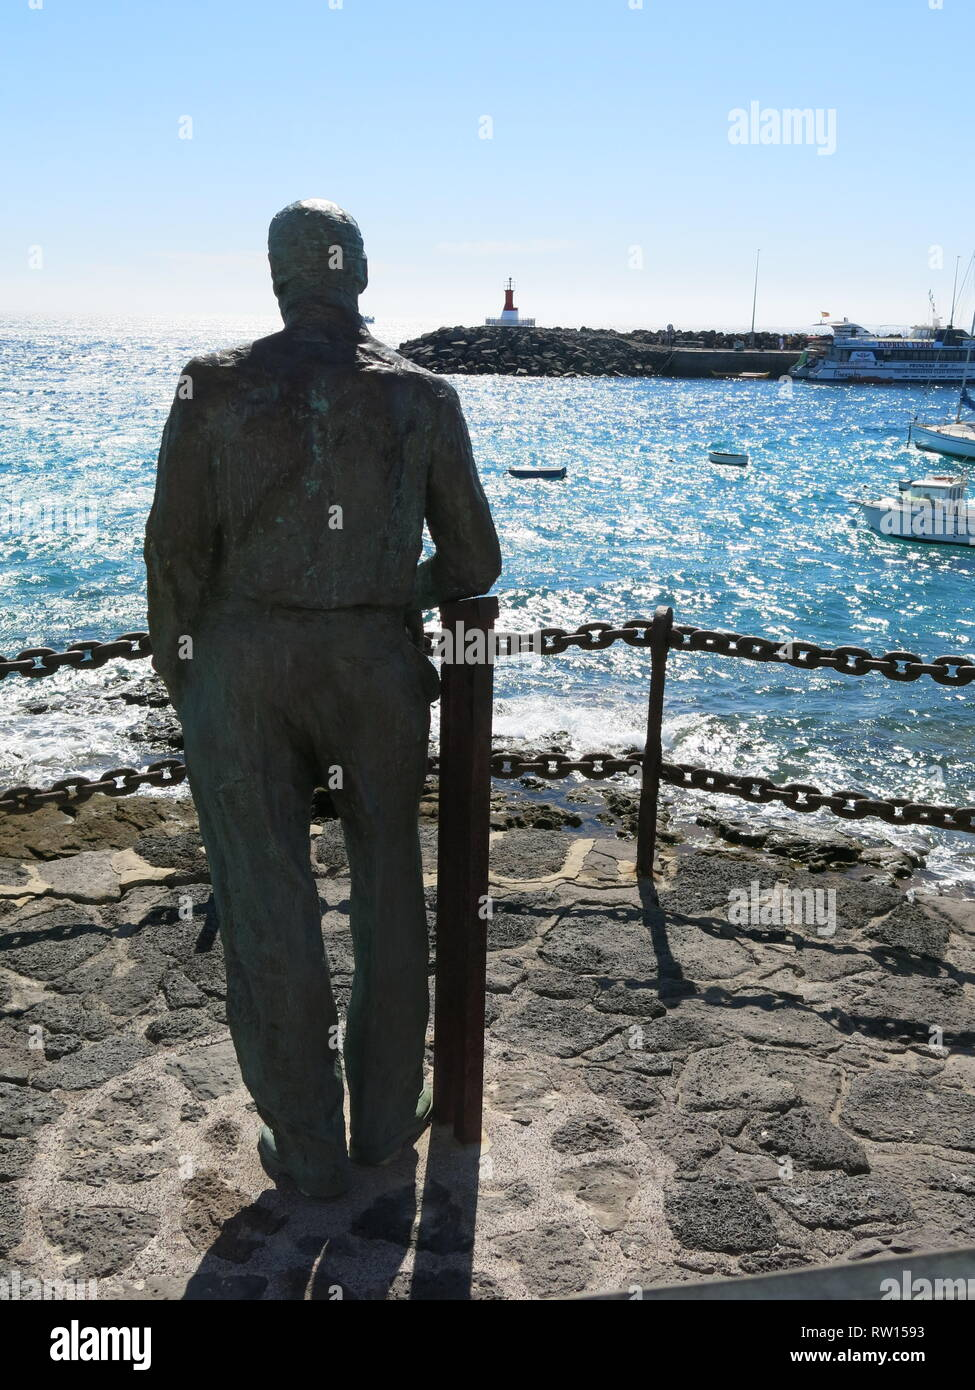 A statue of a man gazing out to sea on the harbour wall at Playa Blanca is to commemorate early Canarians who contributed to the island's development - Stock Image